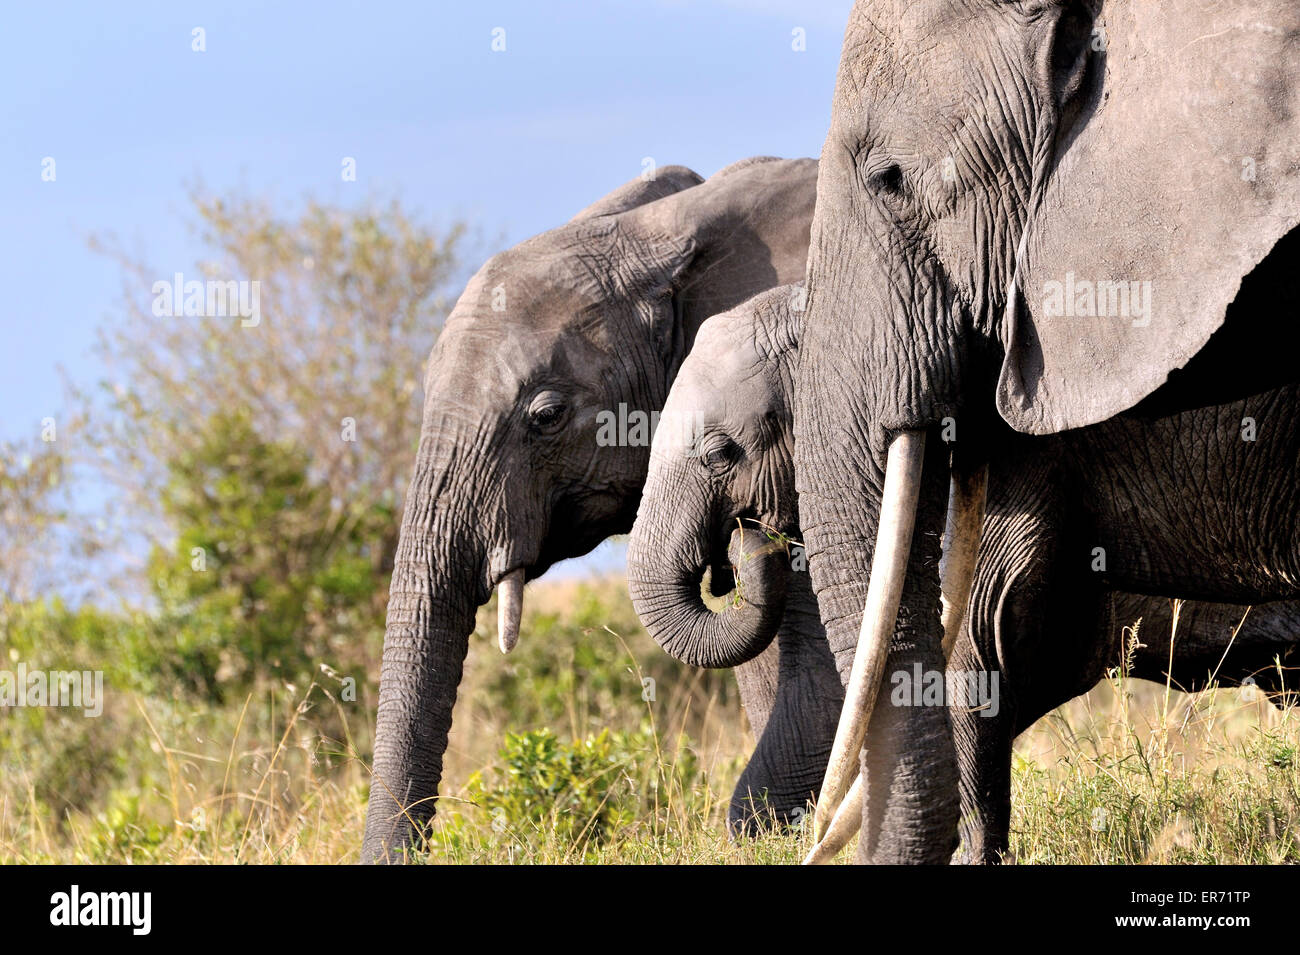 Young elephant and its parents in Masai Mara, group of elephants - Stock Image